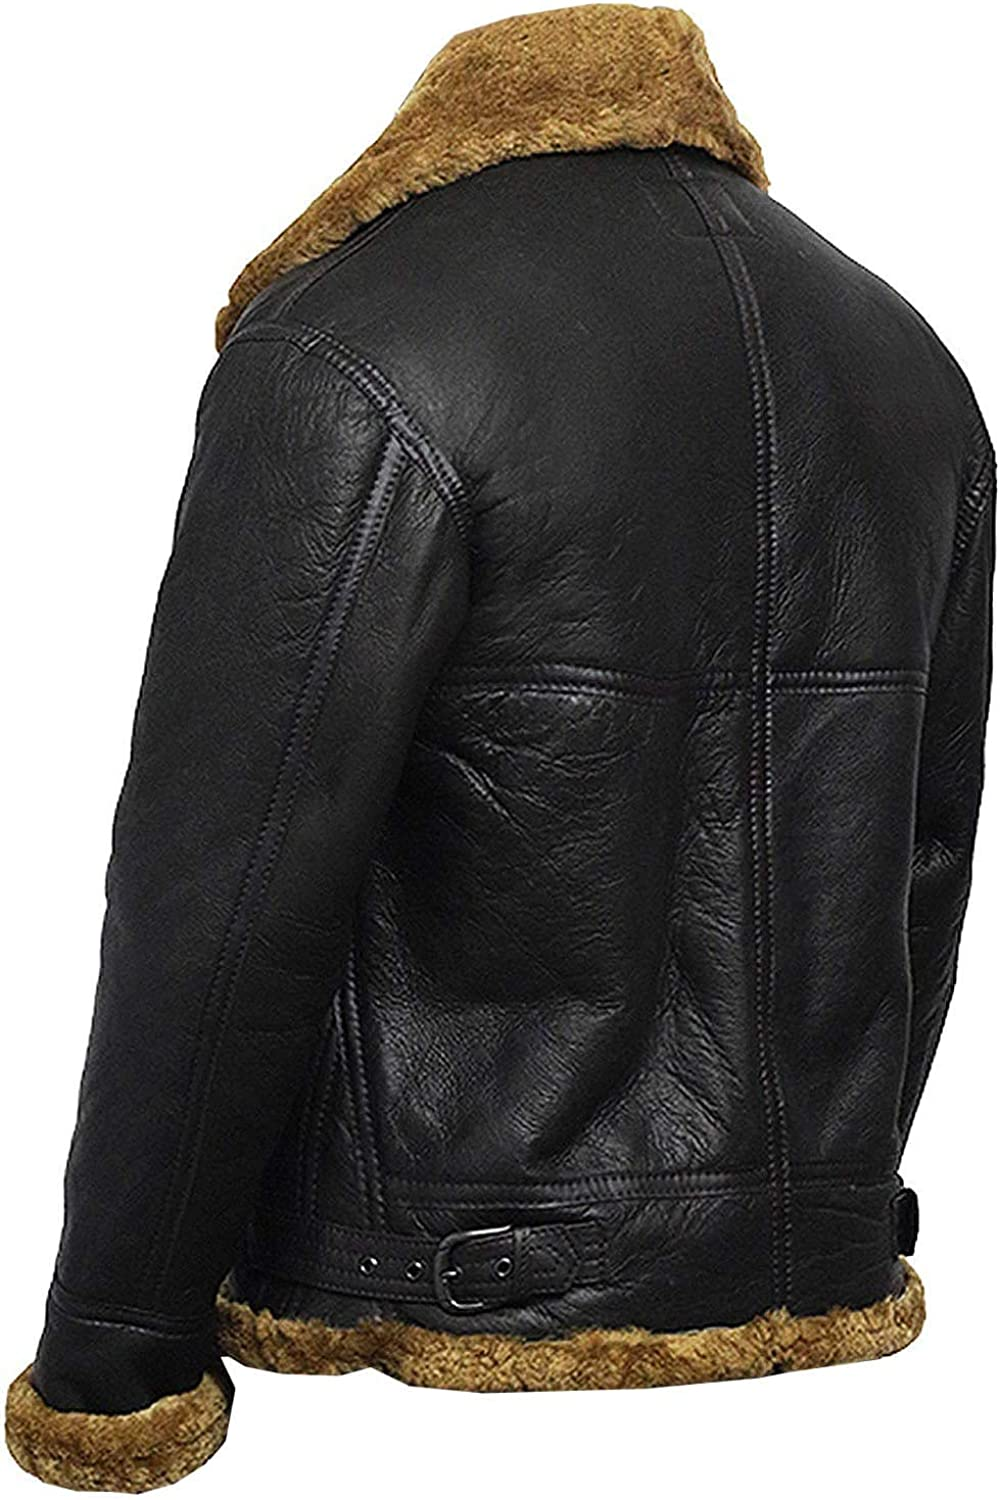 VearFit Flying Avaitor Shearling Real Black Leather Jacket for Men Exculsive Design Black